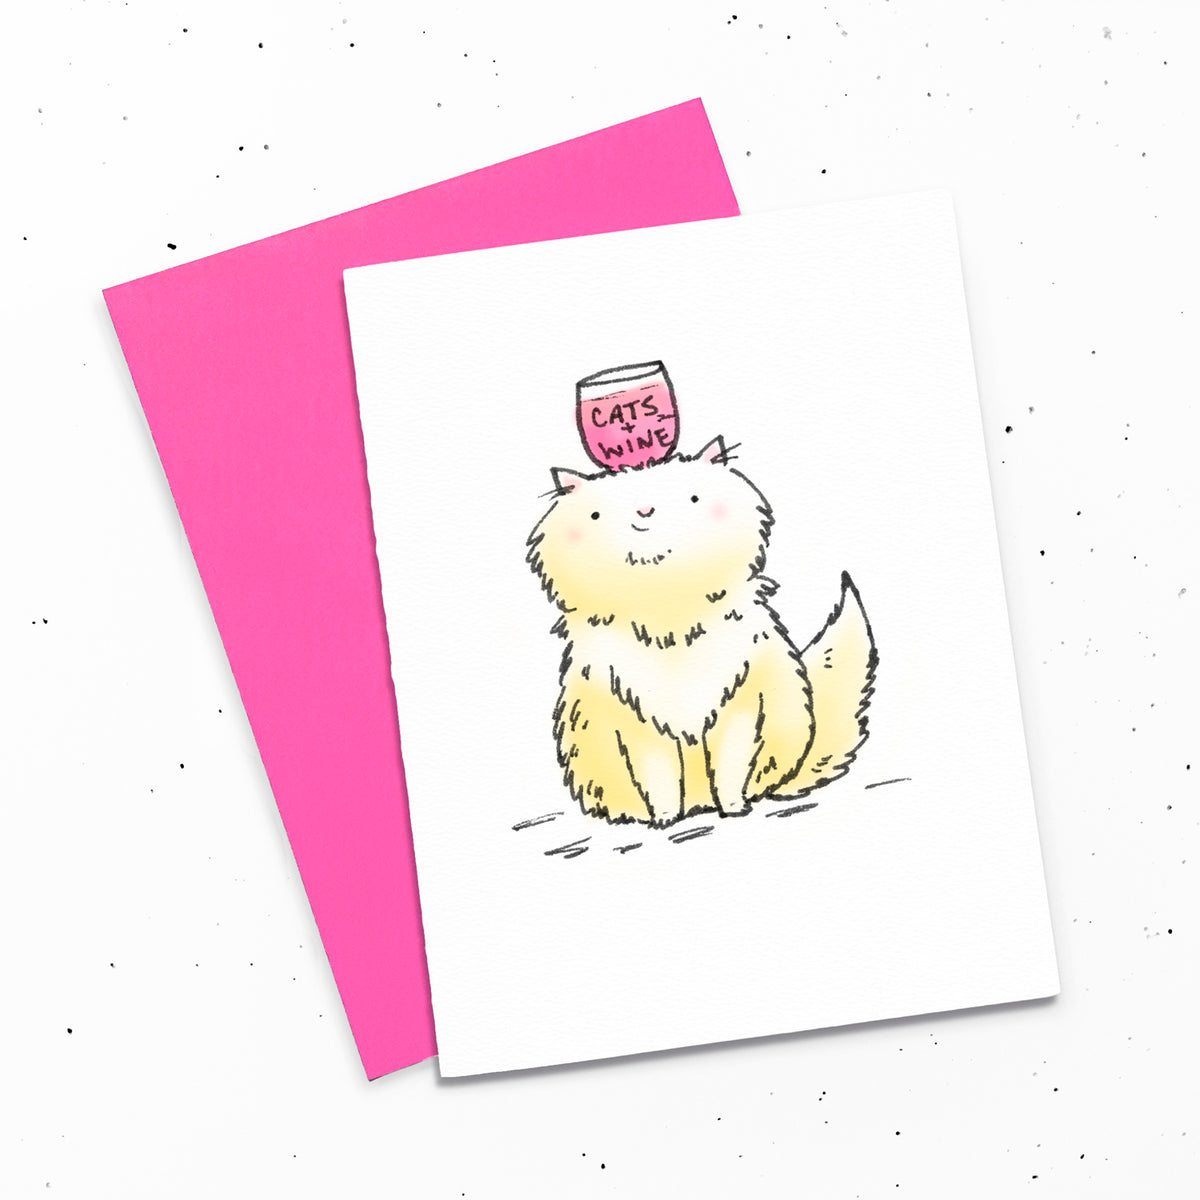 Cats + Wine - Greeting card with a drawing of a ginger cat with a glass of wine on her head.